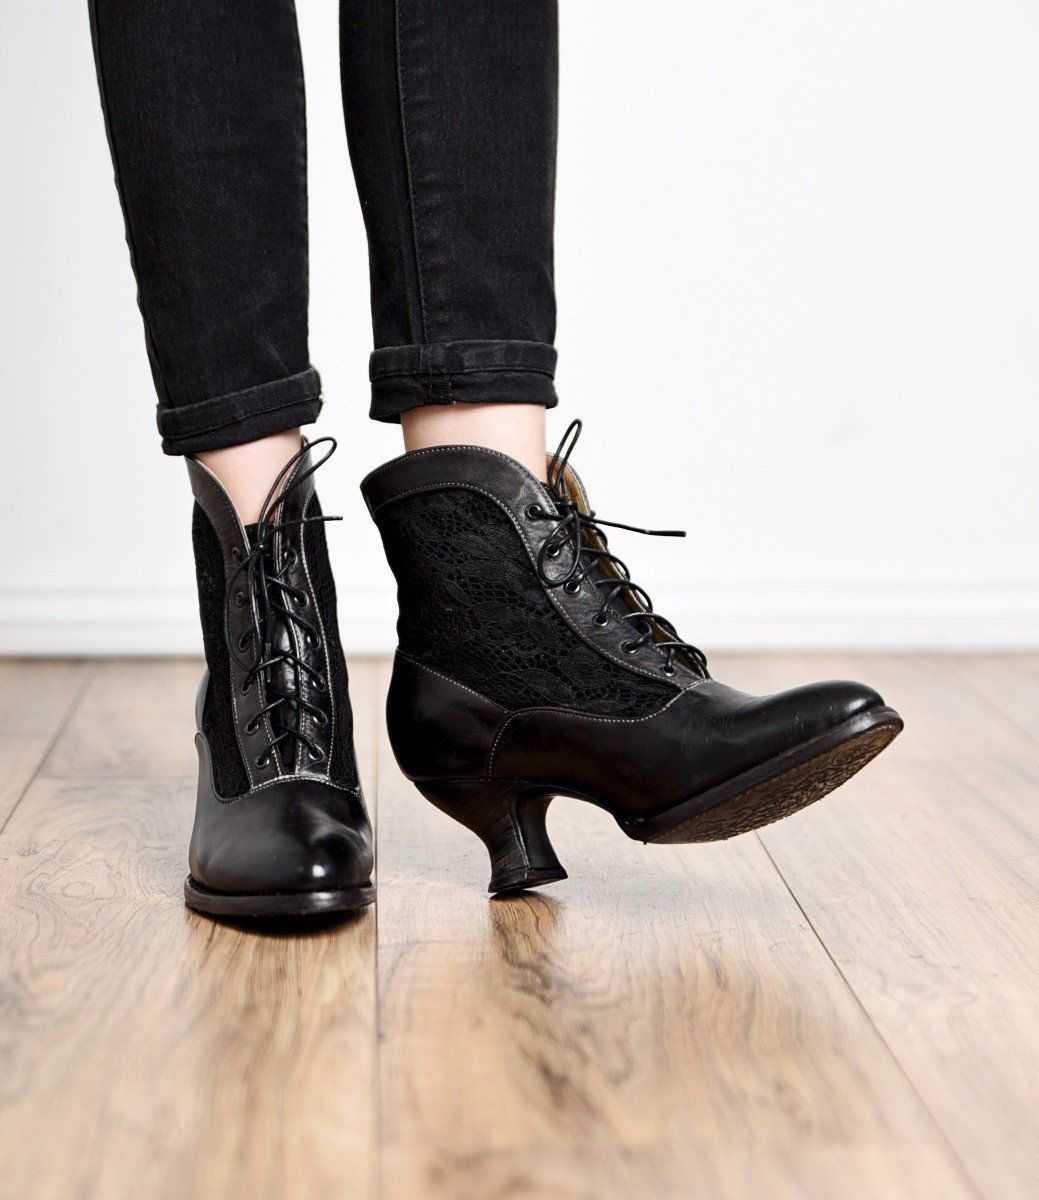 Vintage Style Victorian Lace Up Leather